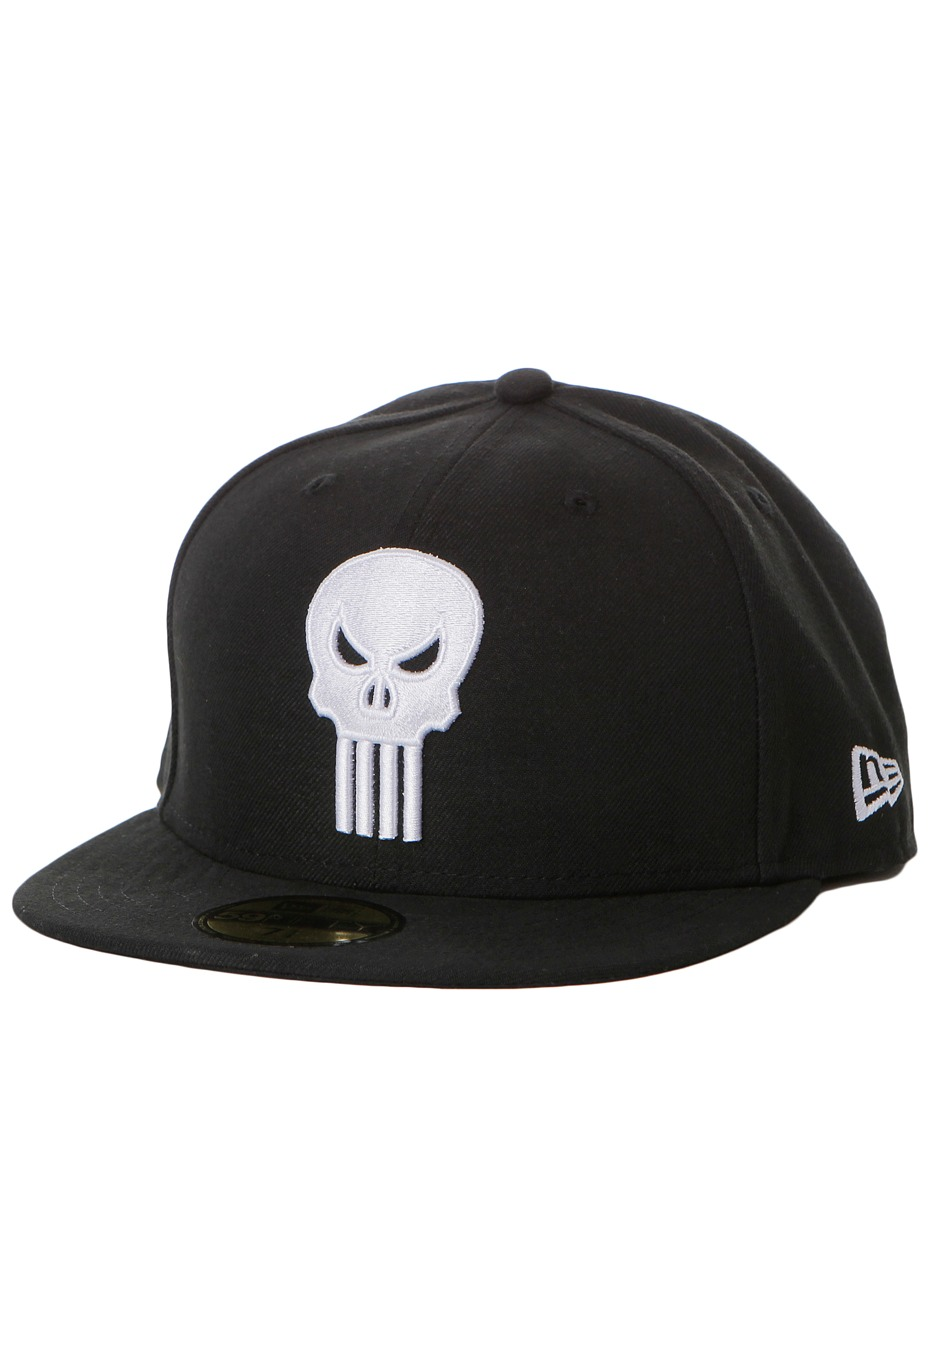 New Era - Basic Badge Punisher - Cap - Impericon.com UK 46473eb5f91